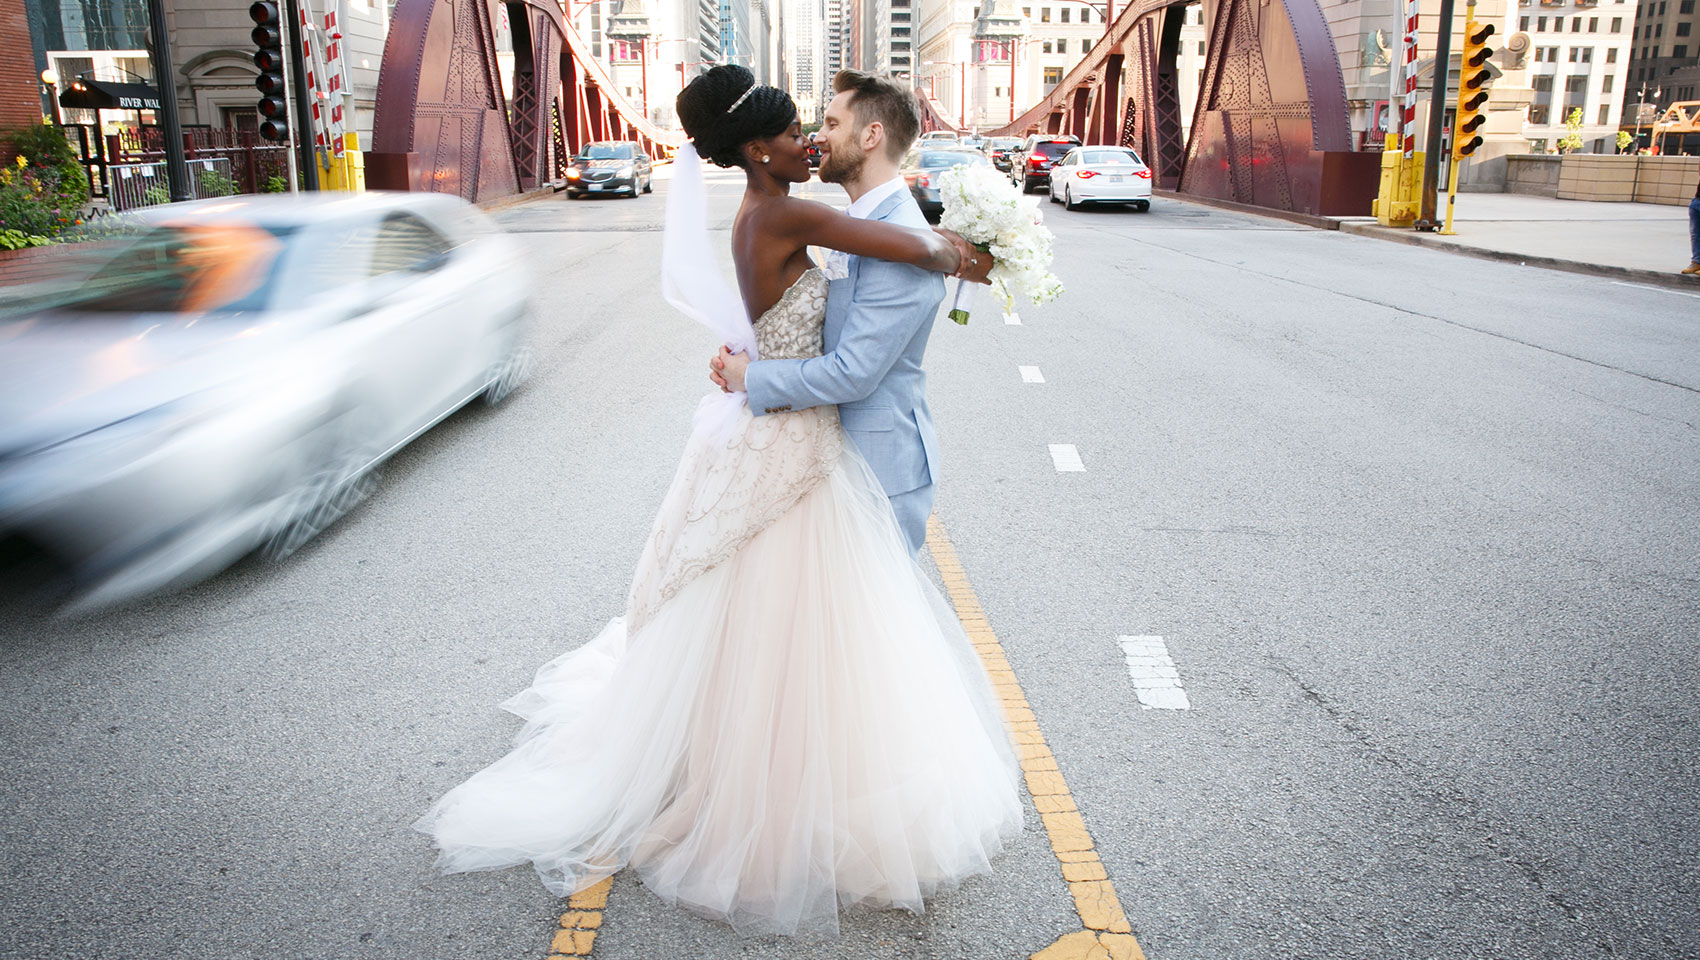 Newlyweds, Chicago streets